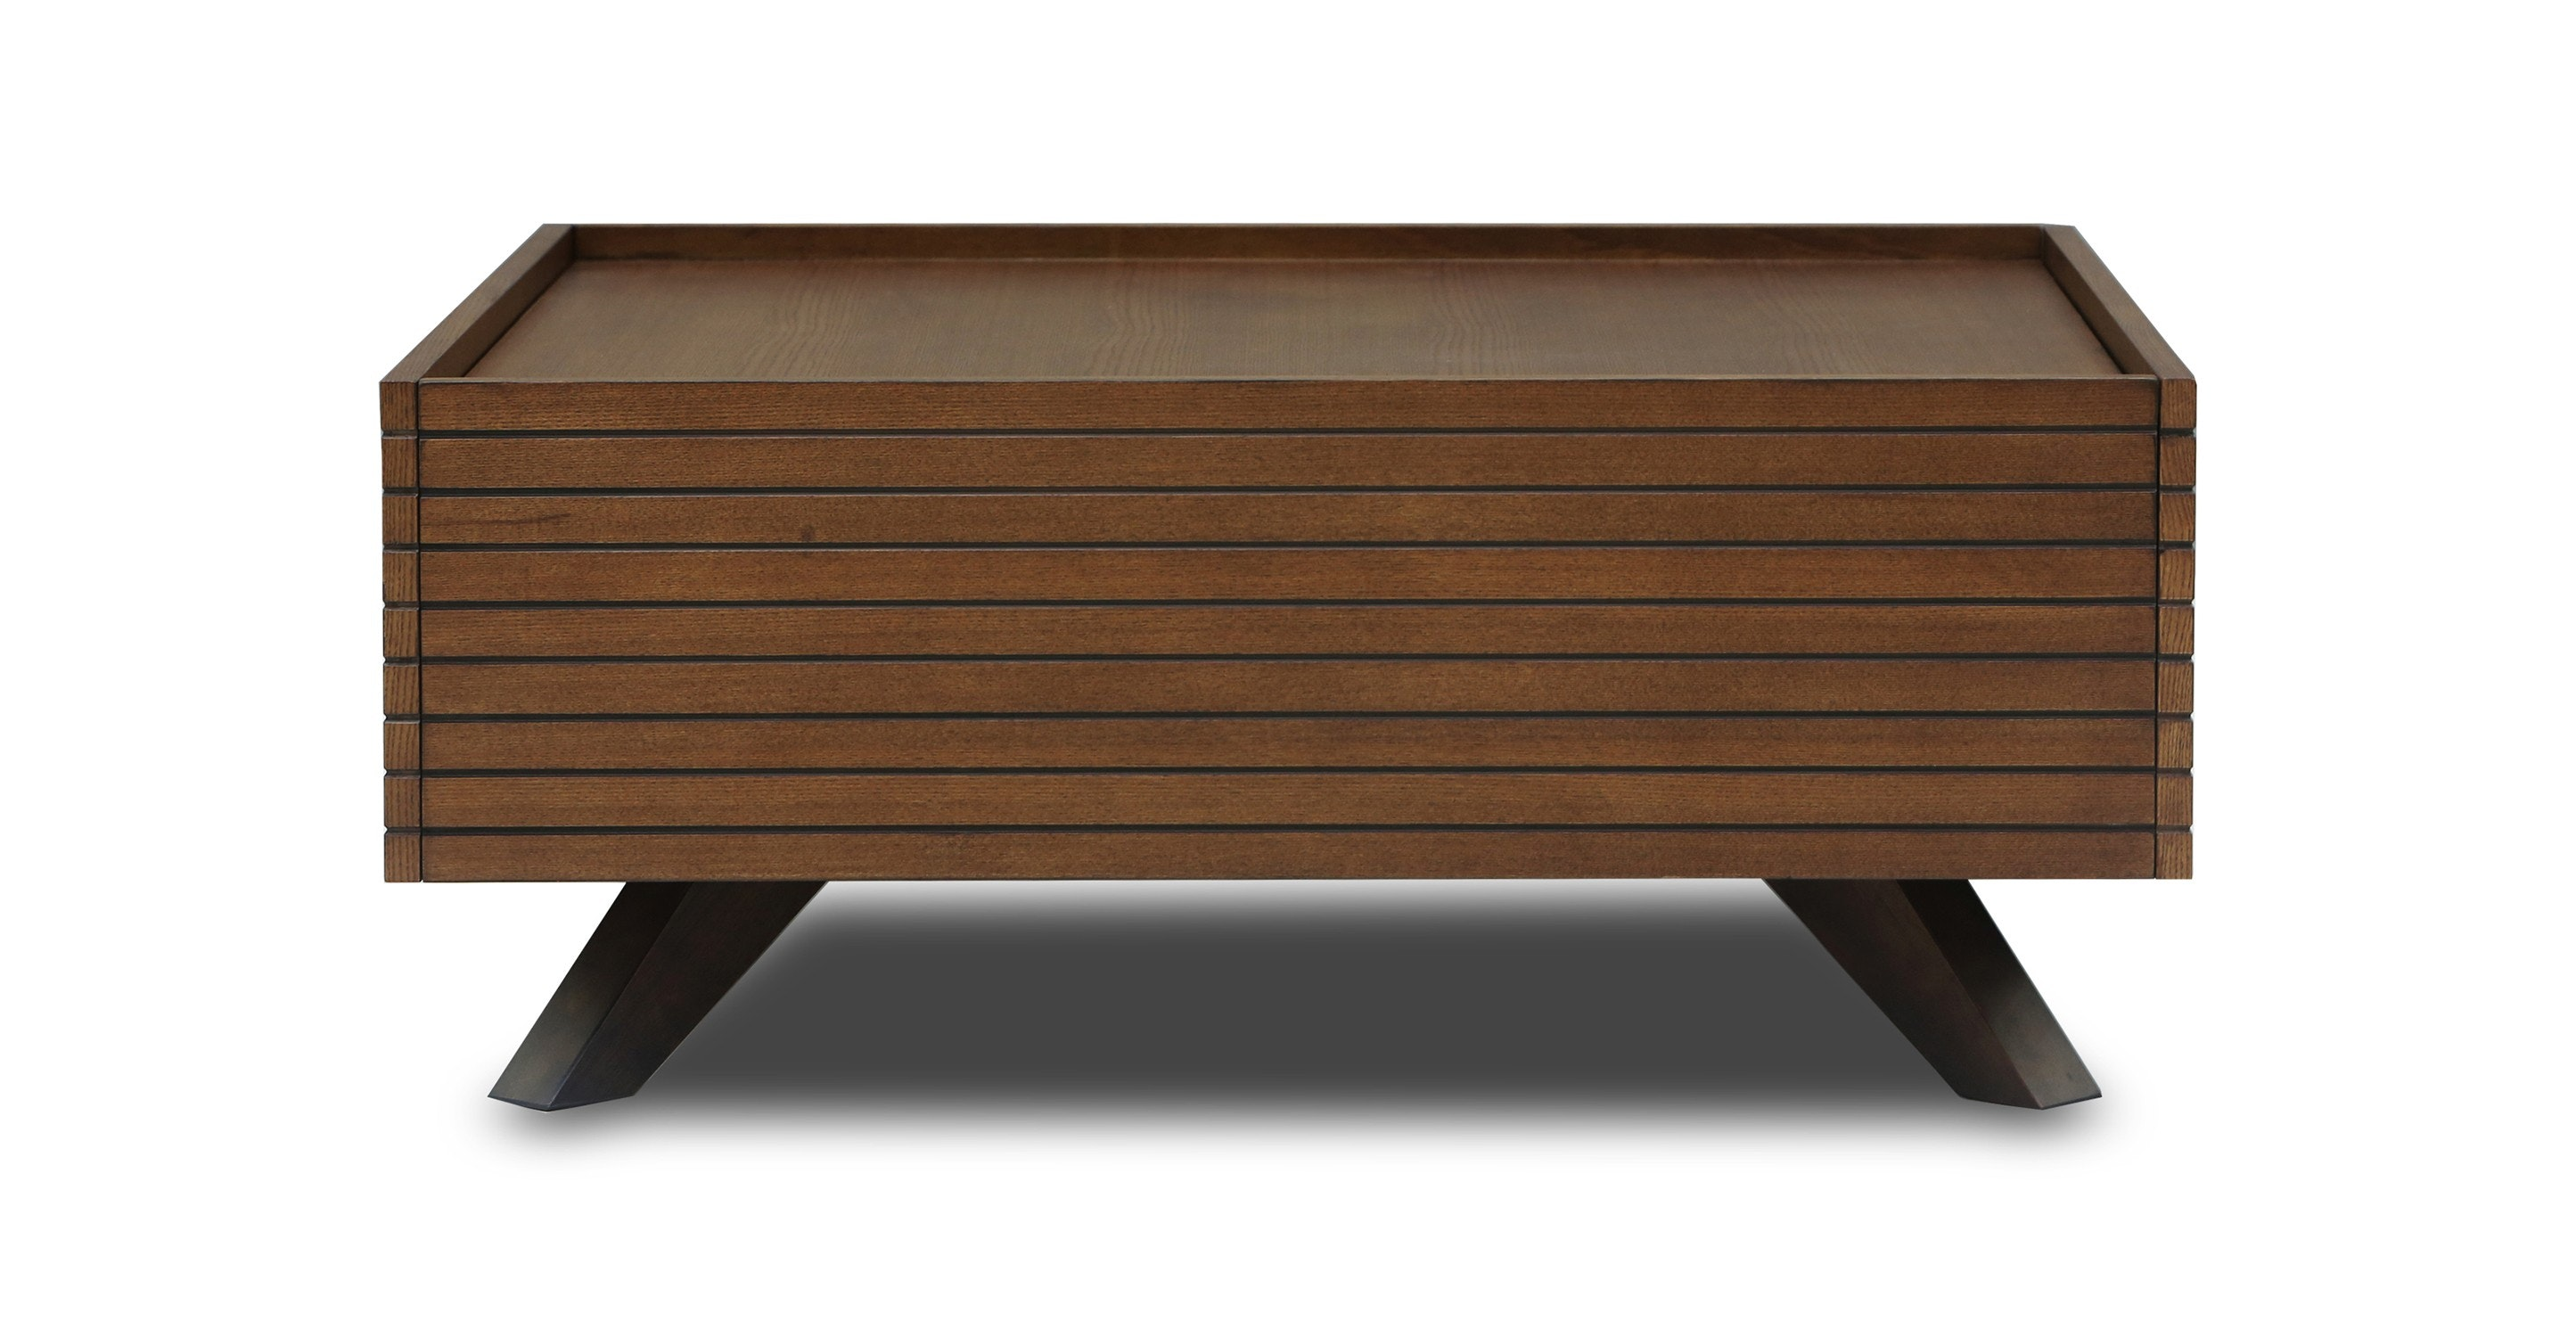 Merveilleux Strip Cocoa Wood Coffee Table